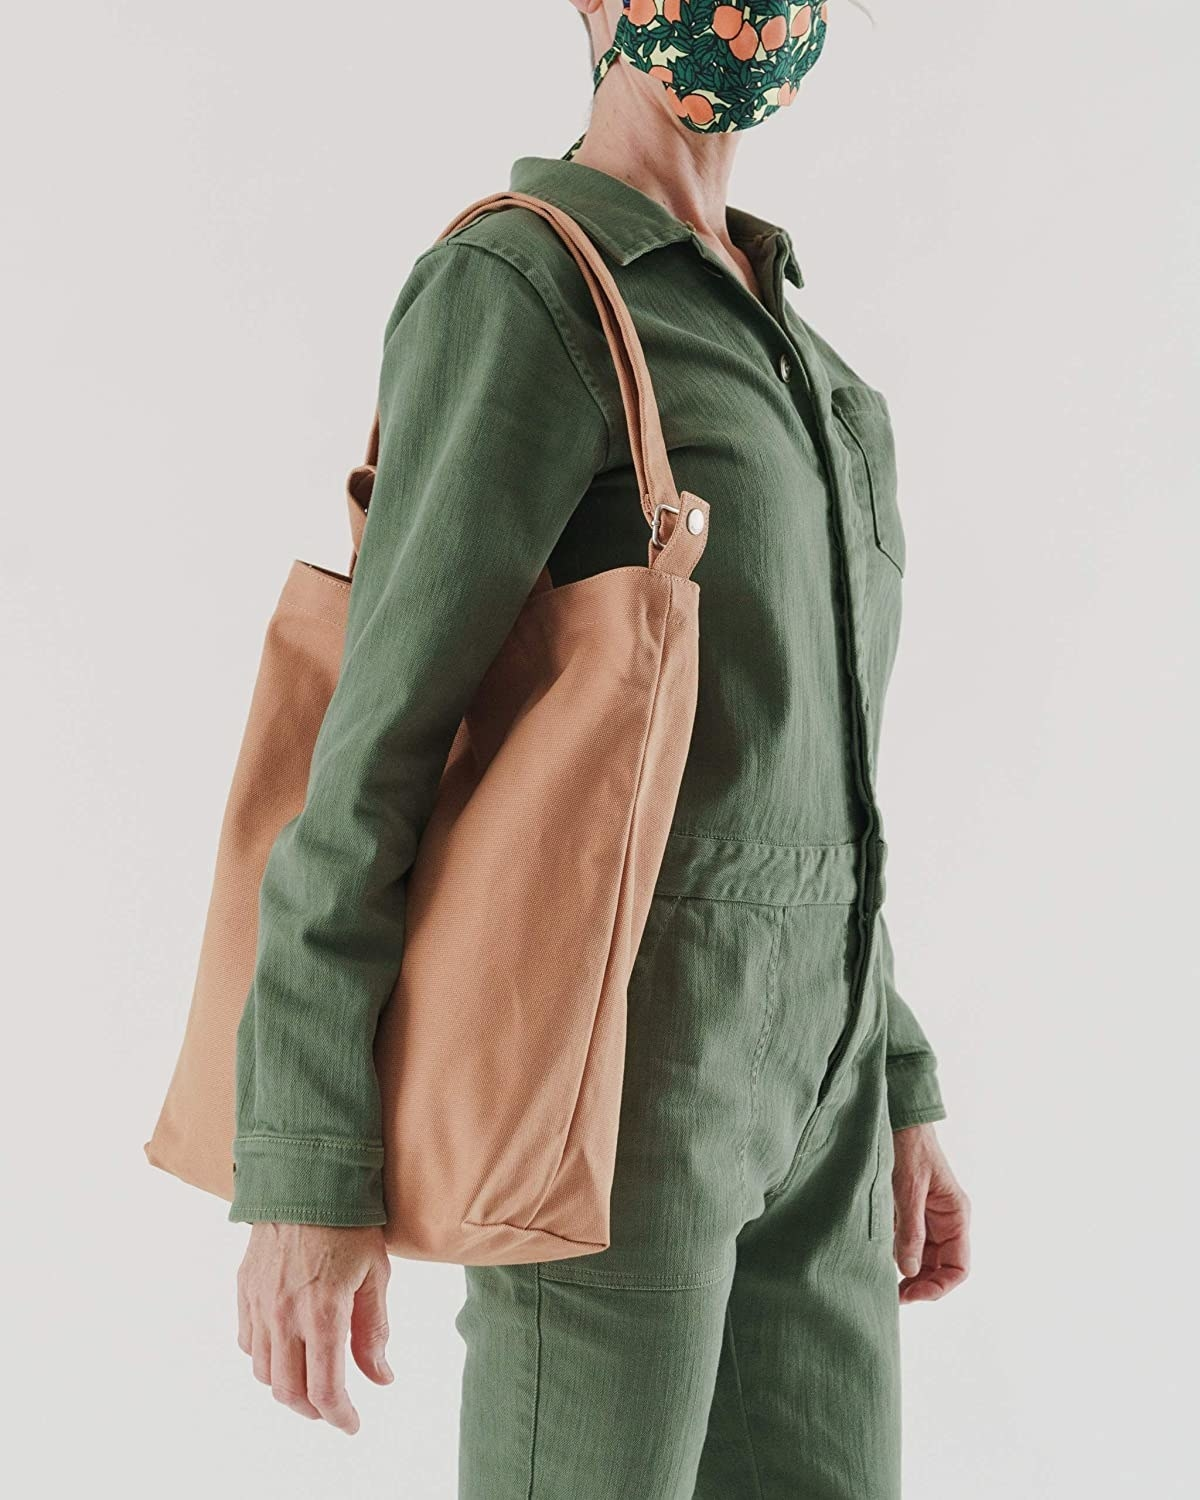 model carrying the adobe colored baggu tote from their shoulder